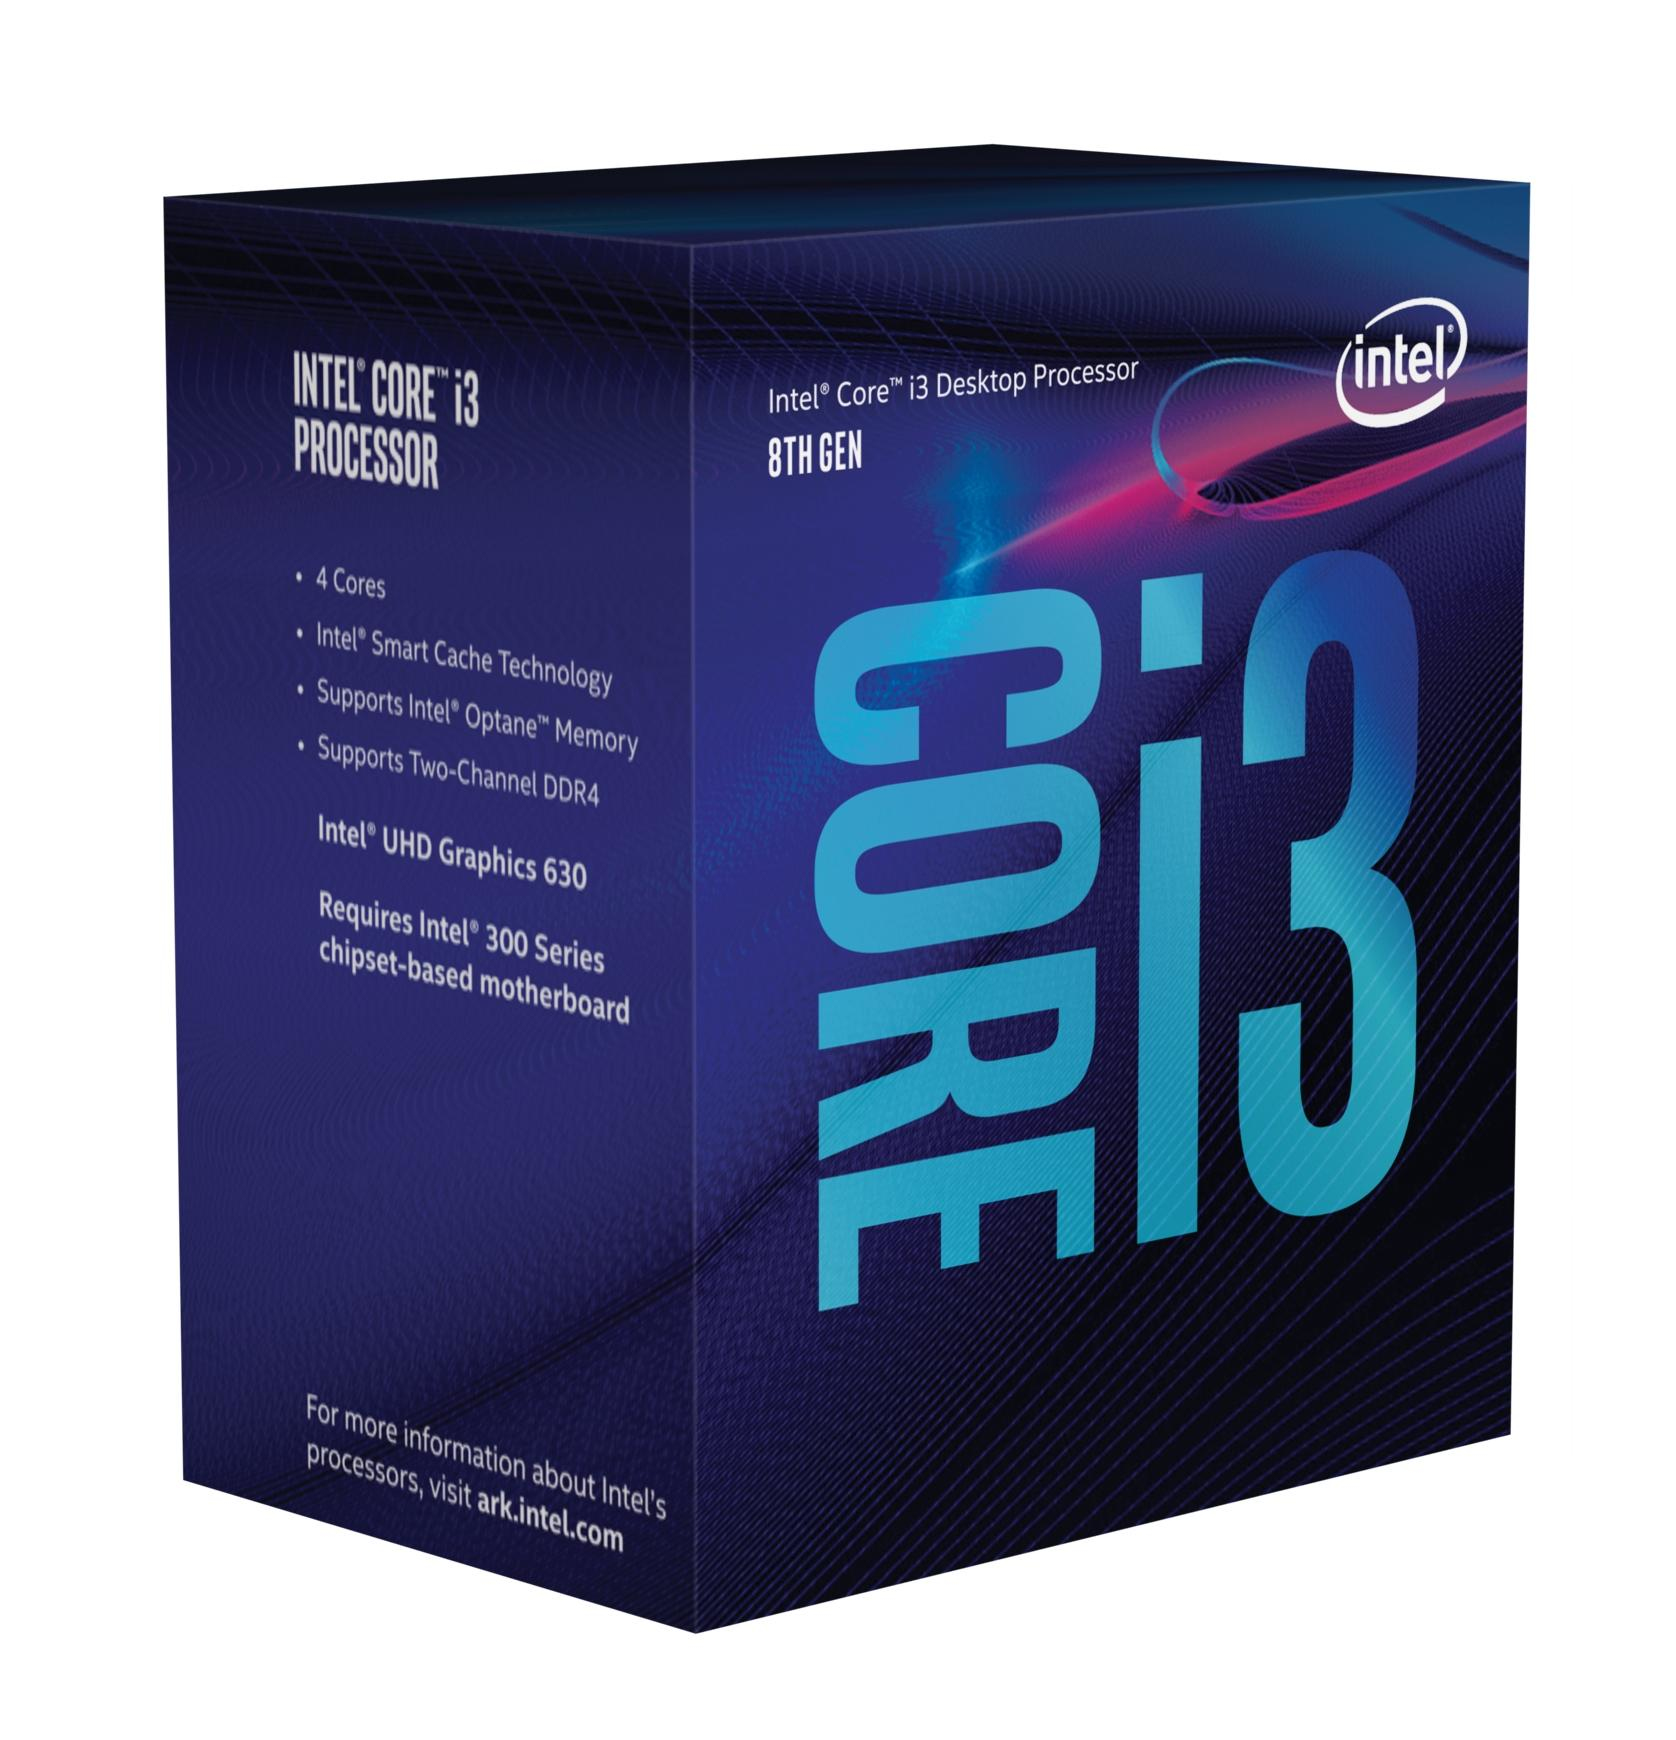 INTEL CORE I3-8350K PROCESSOR (8M CACHE, 4.00 GHZ) 4GHZ 8MB SMART CACHE BOX